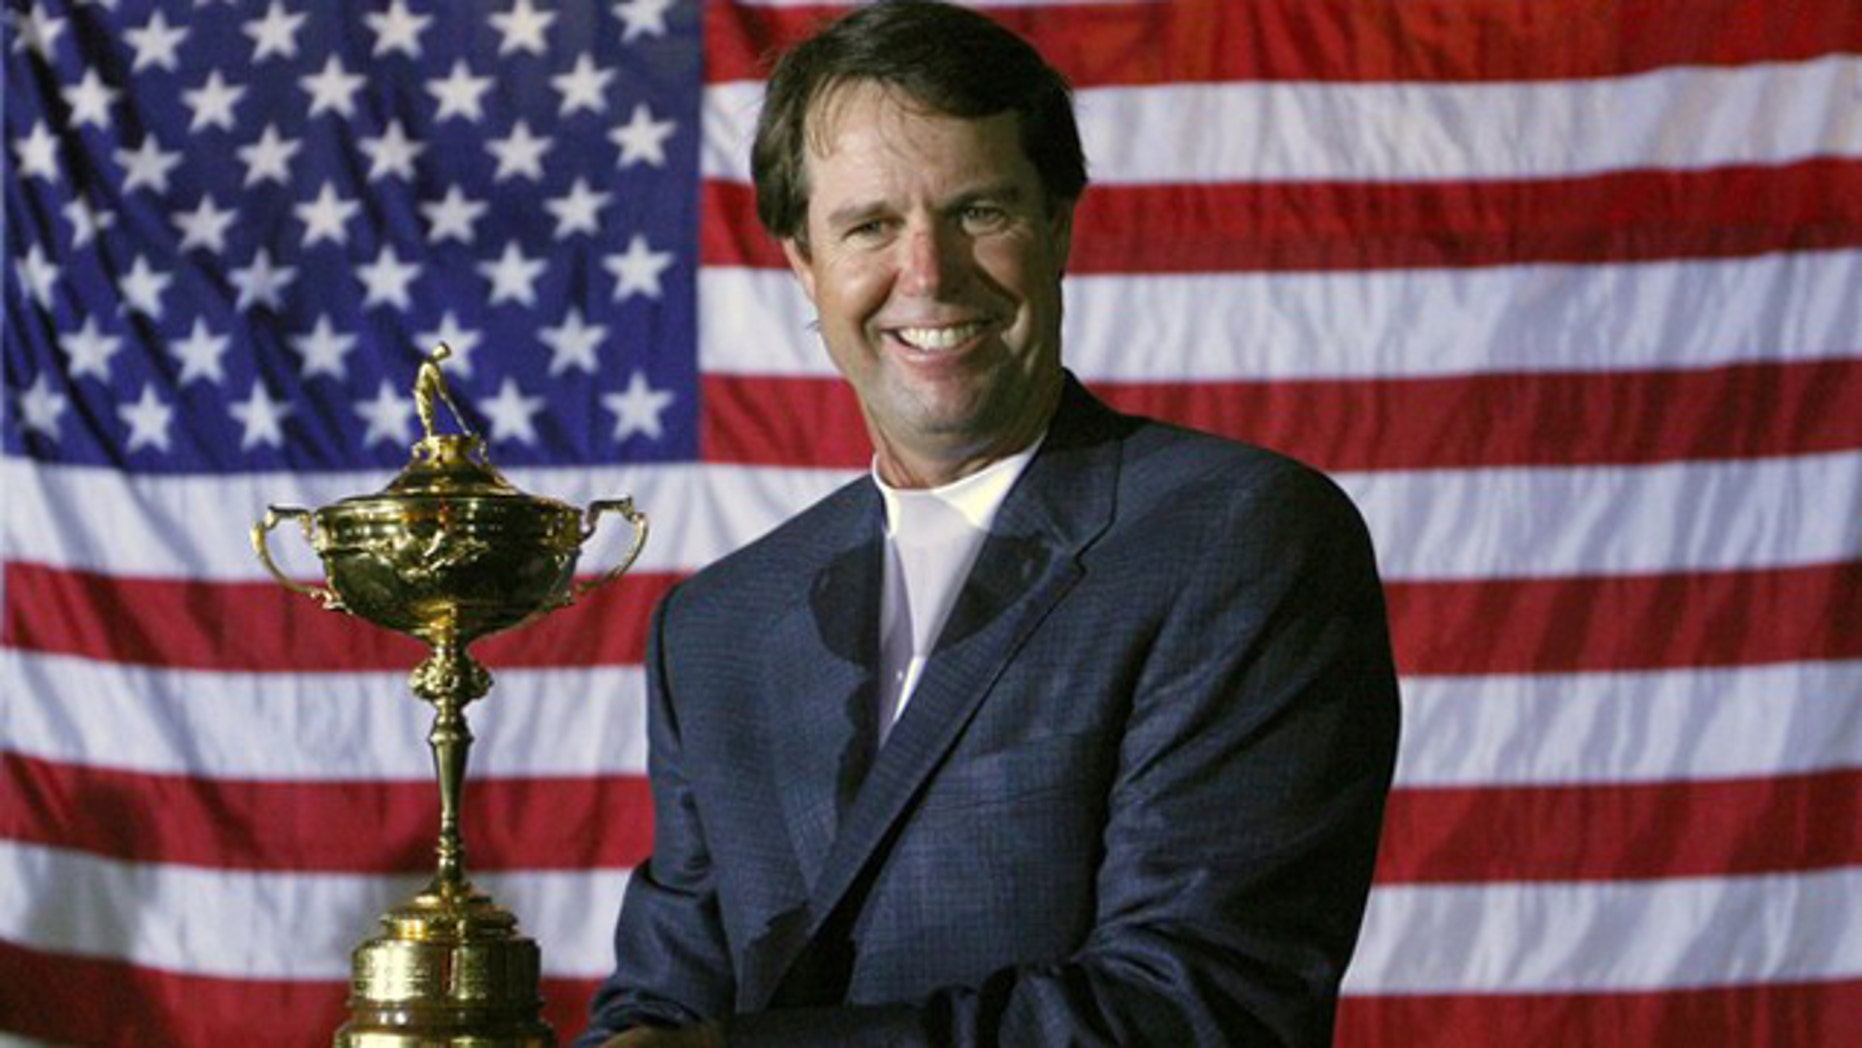 U.S. team captain Paul Azinger holds the Ryder Cup after defeating the European team to win the 37th Ryder Cup Championship at the Valhalla Golf Club in Louisville, Ky., in this Sept. 21, 2008 file photo.